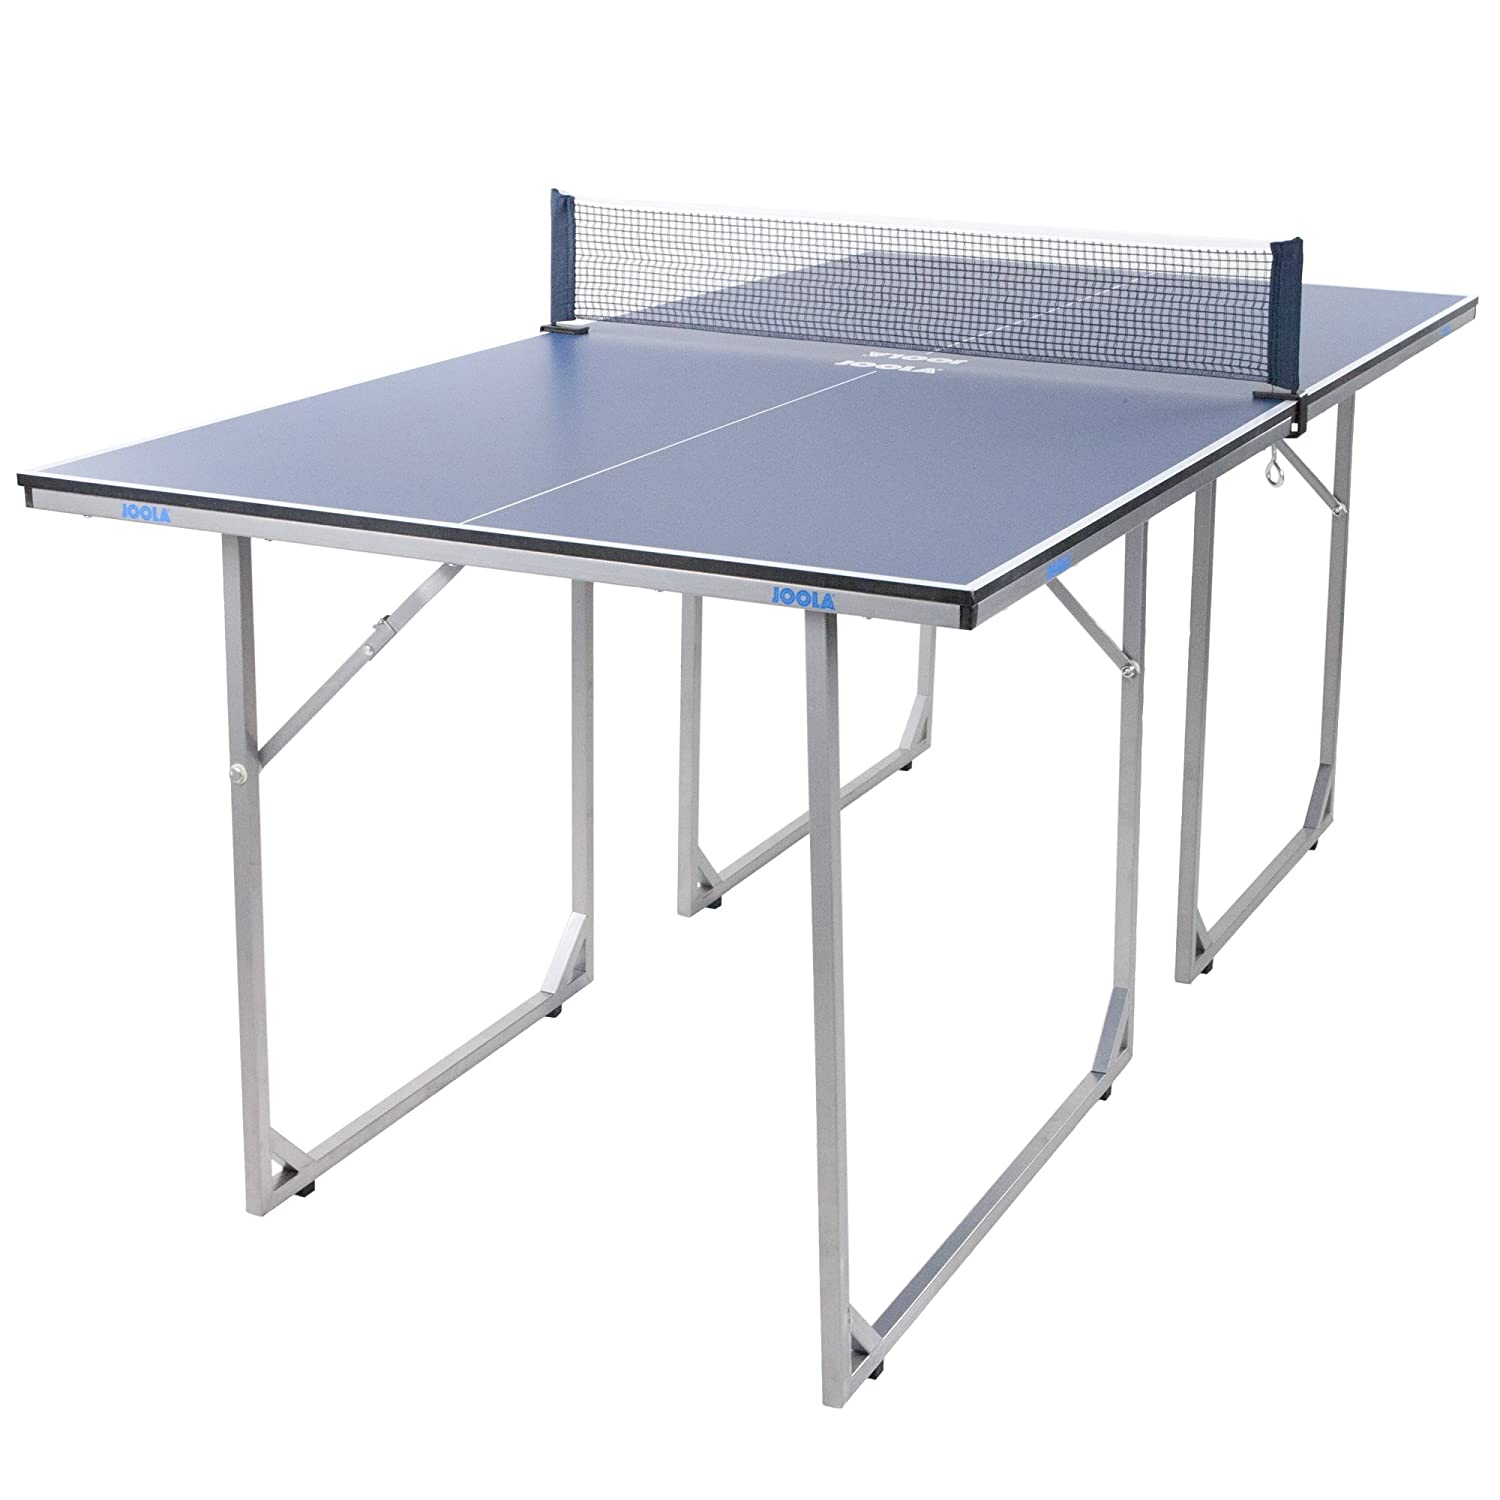 Table tennis table ping pong folding w 2 separate halves - What is the size of a ping pong table ...